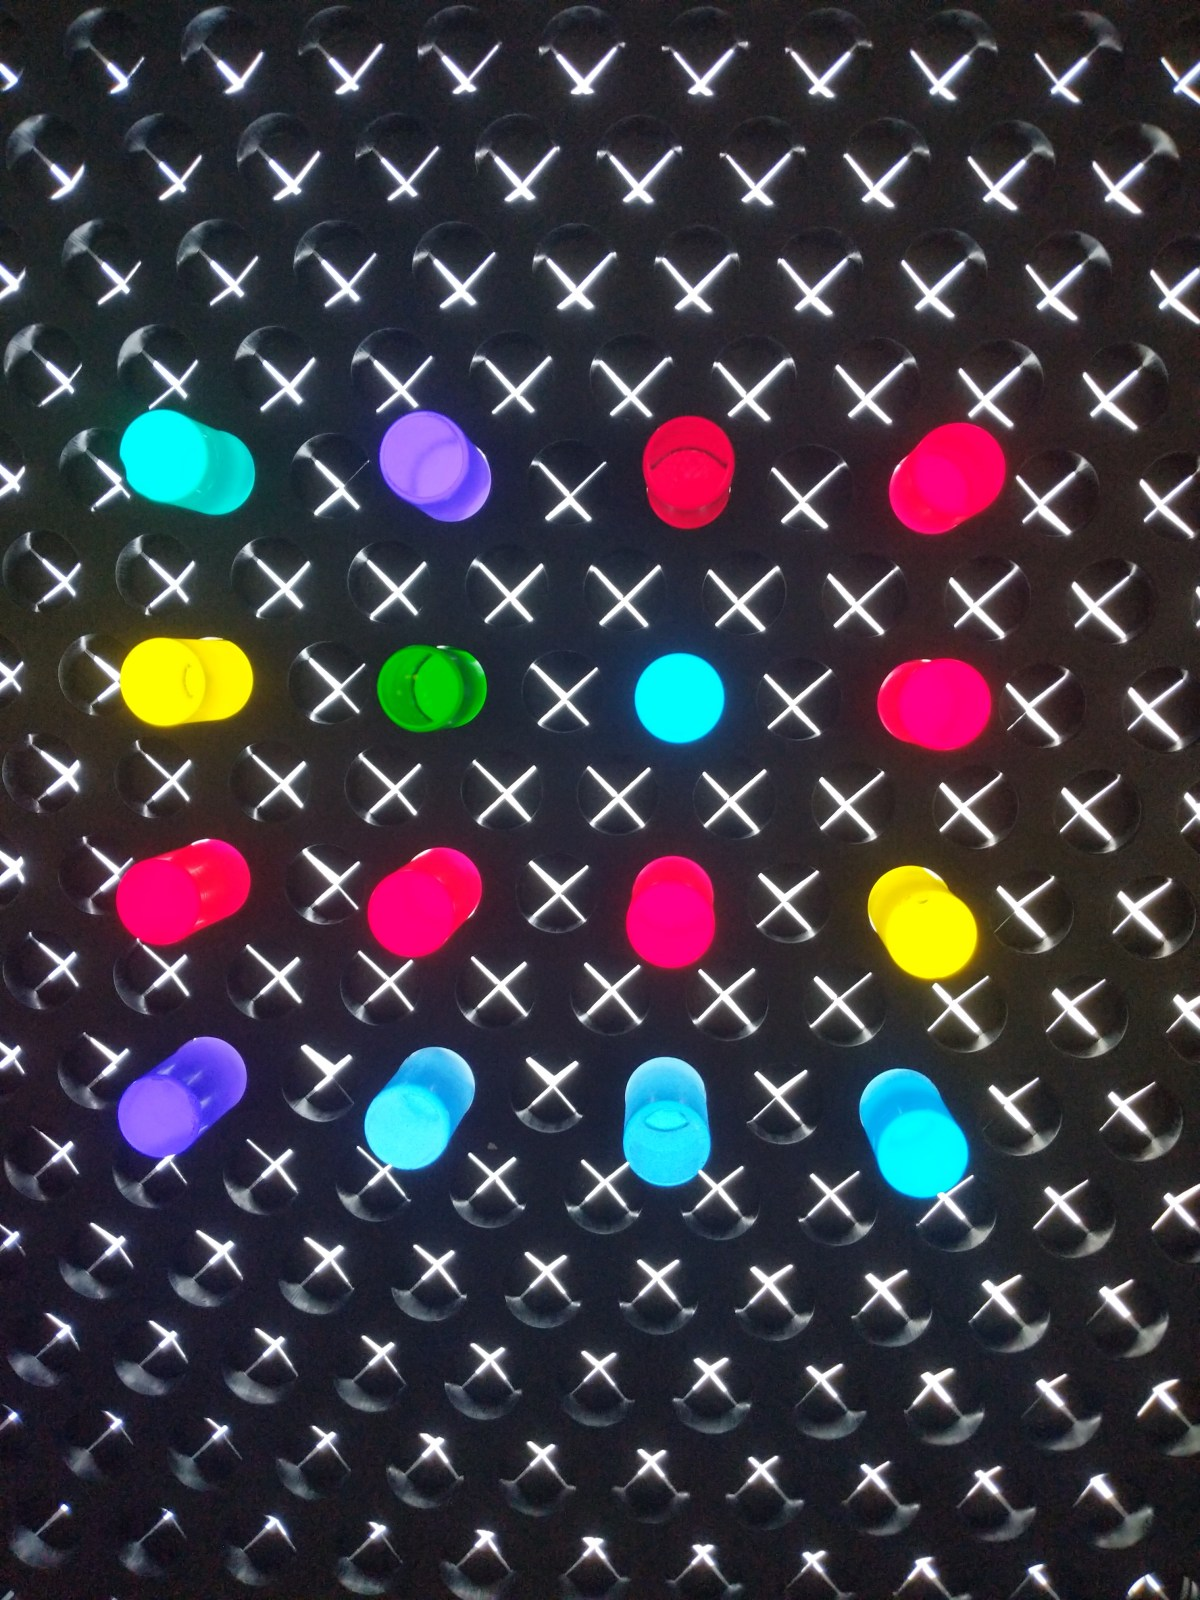 A black wall with sixteen colored light sticks that form a square